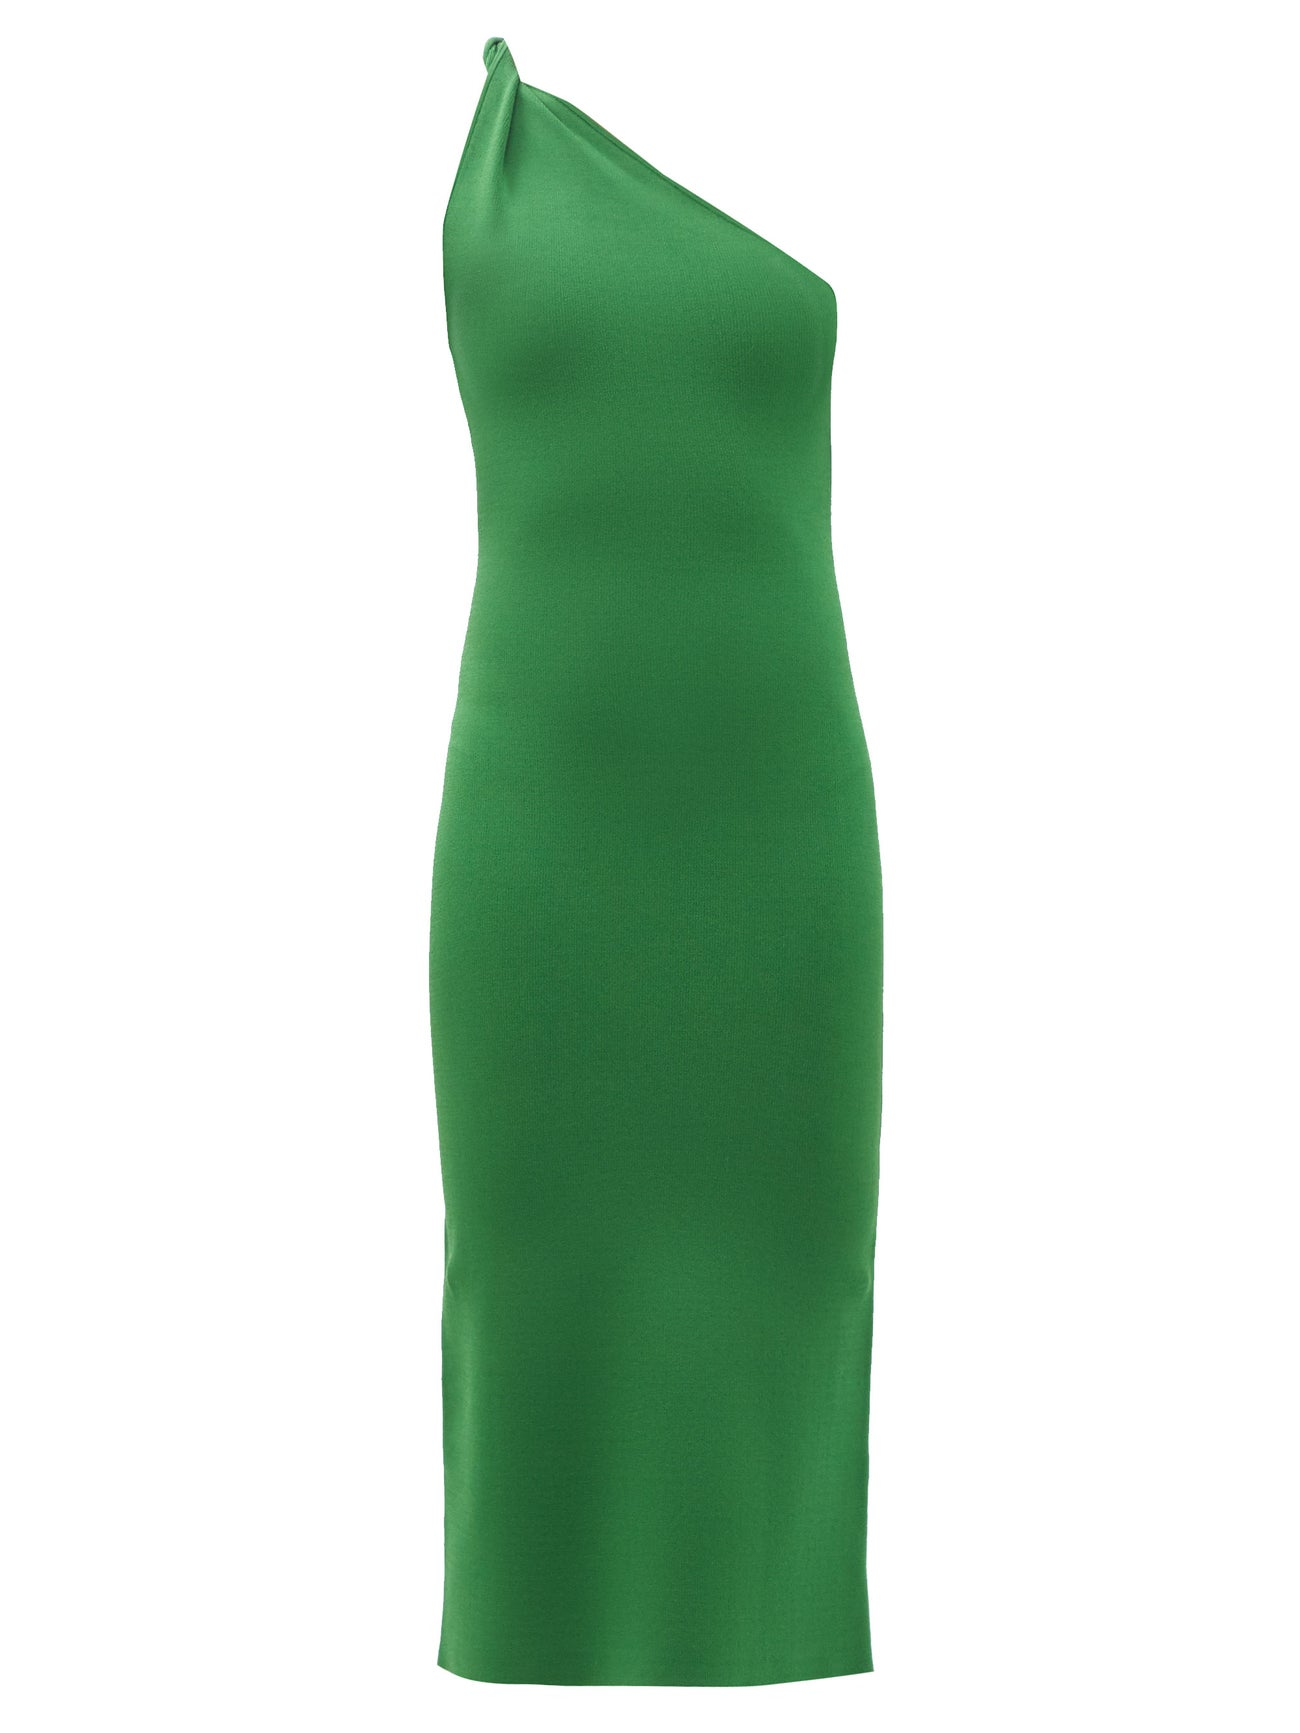 Persephone one-shoulder knitted dress by GALVAN, available on matchesfashion.com for EUR437 Karlie Kloss Dress Exact Product